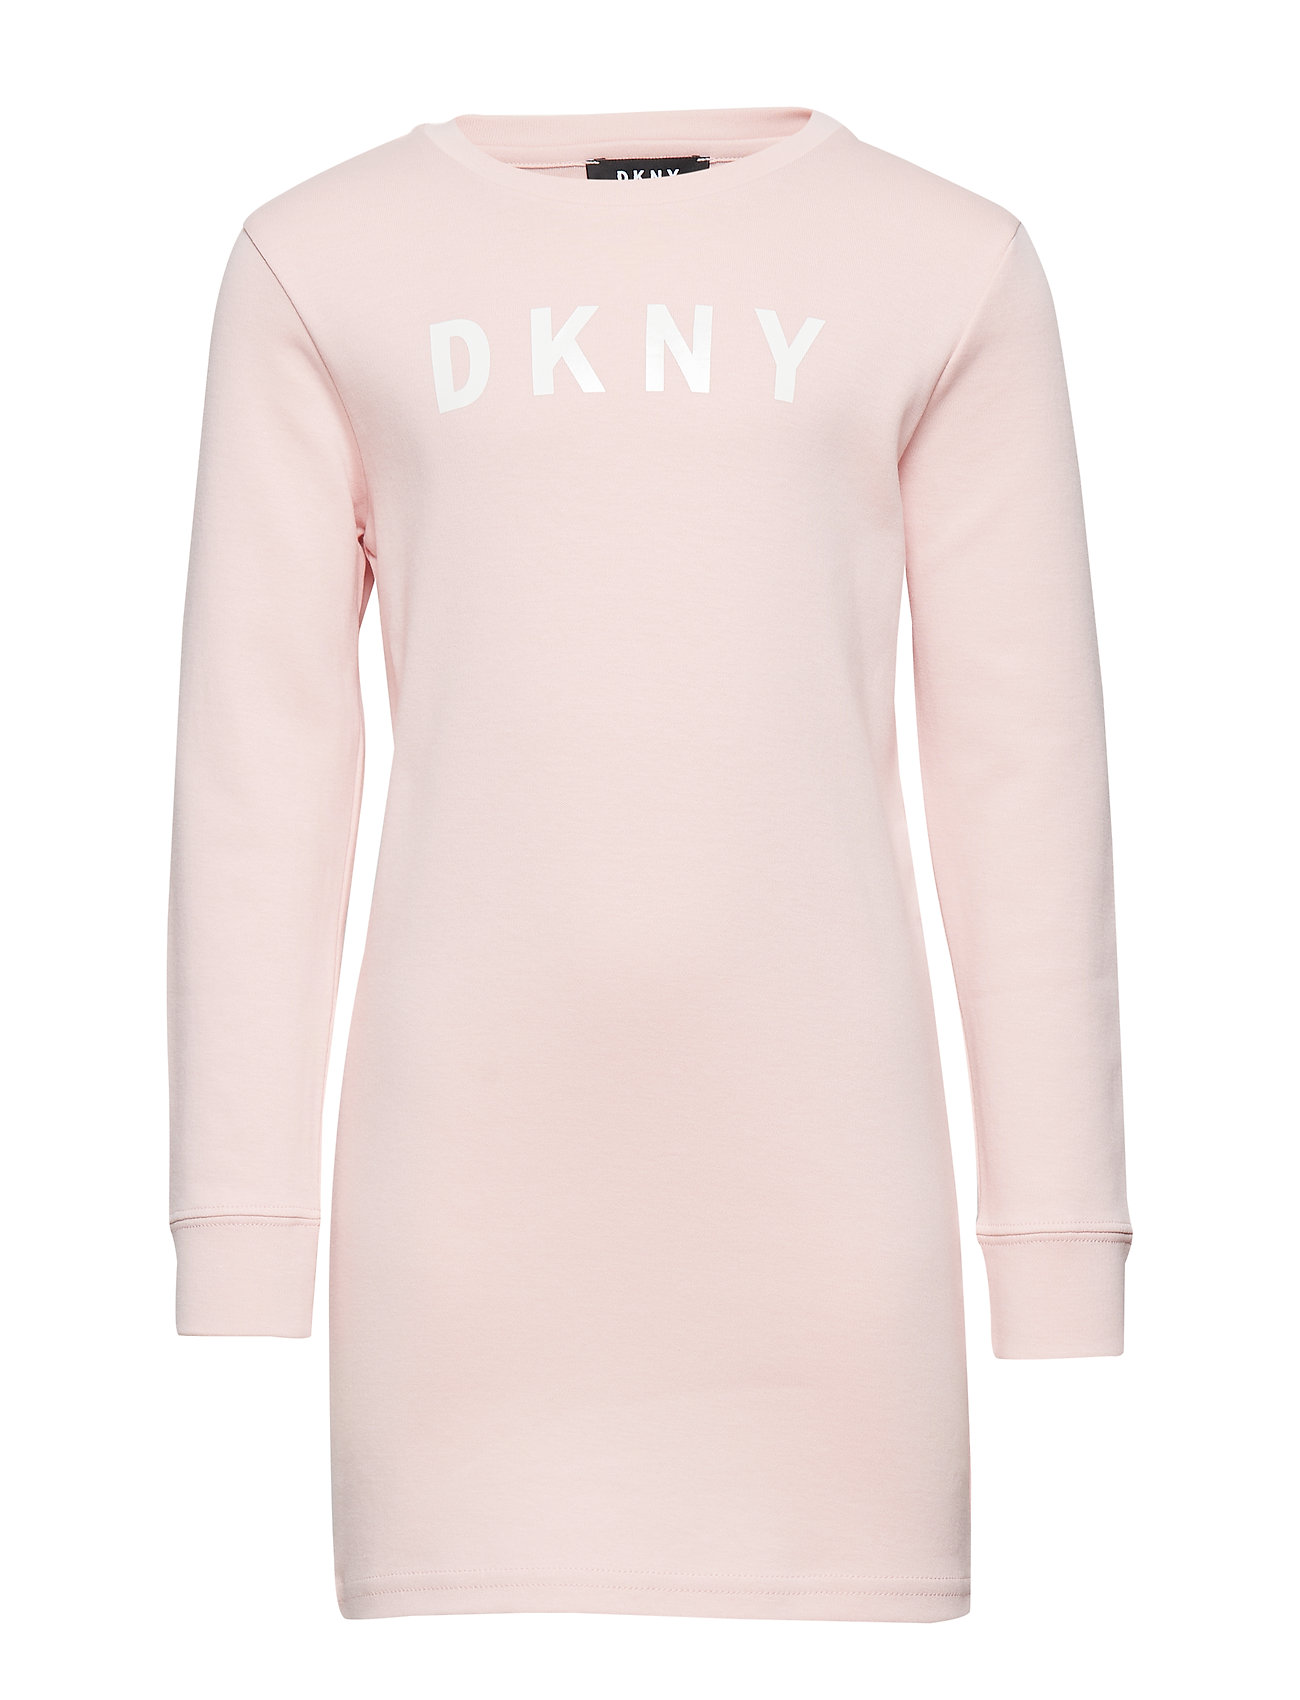 DKNY kids LONG SLEEVED DRESS - PINK